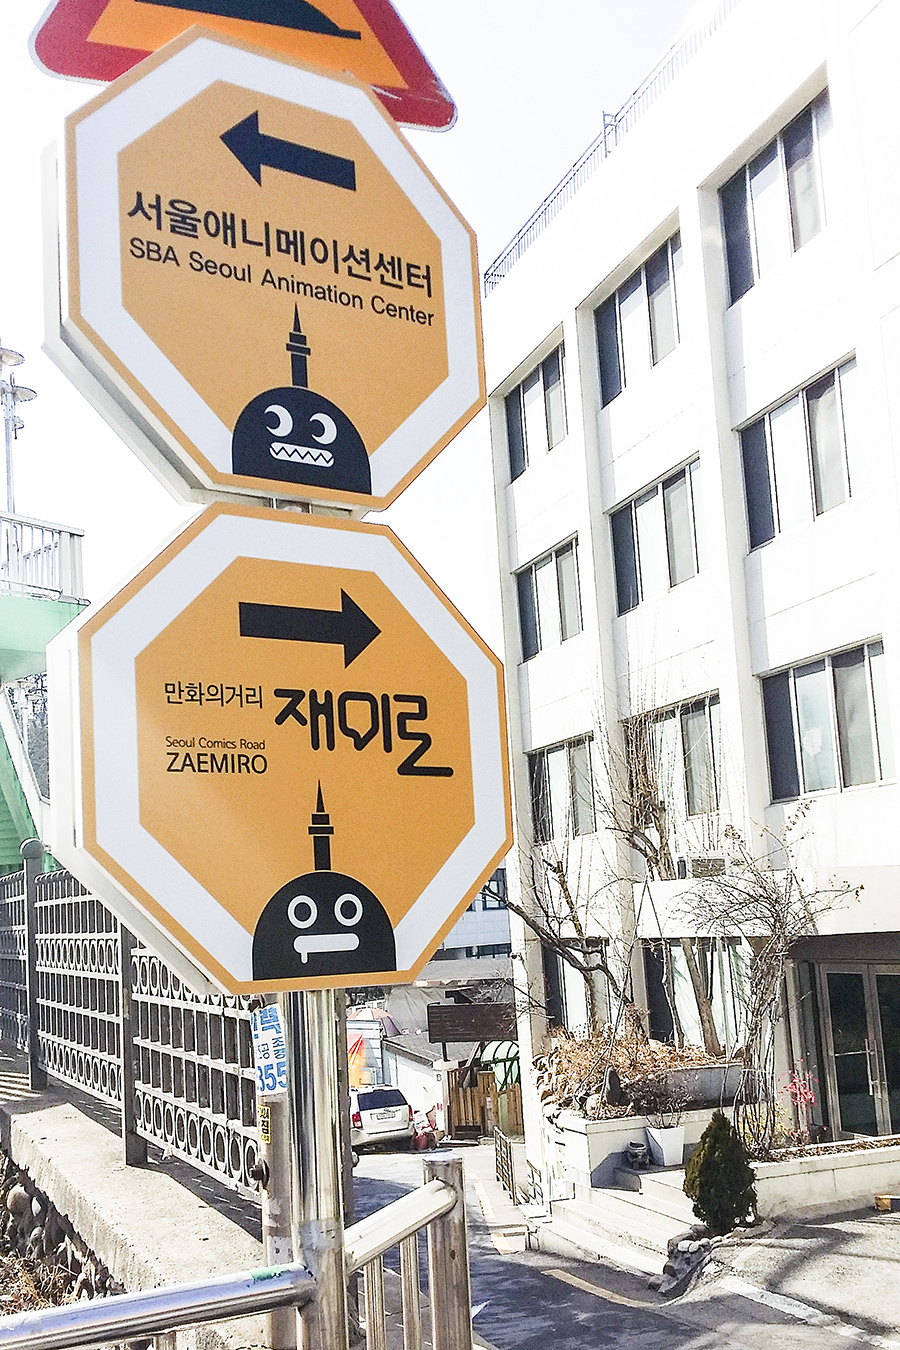 Road signs pointing to Seoul Animation Center and Zaemiro Seoul Comics Road in South Korea.